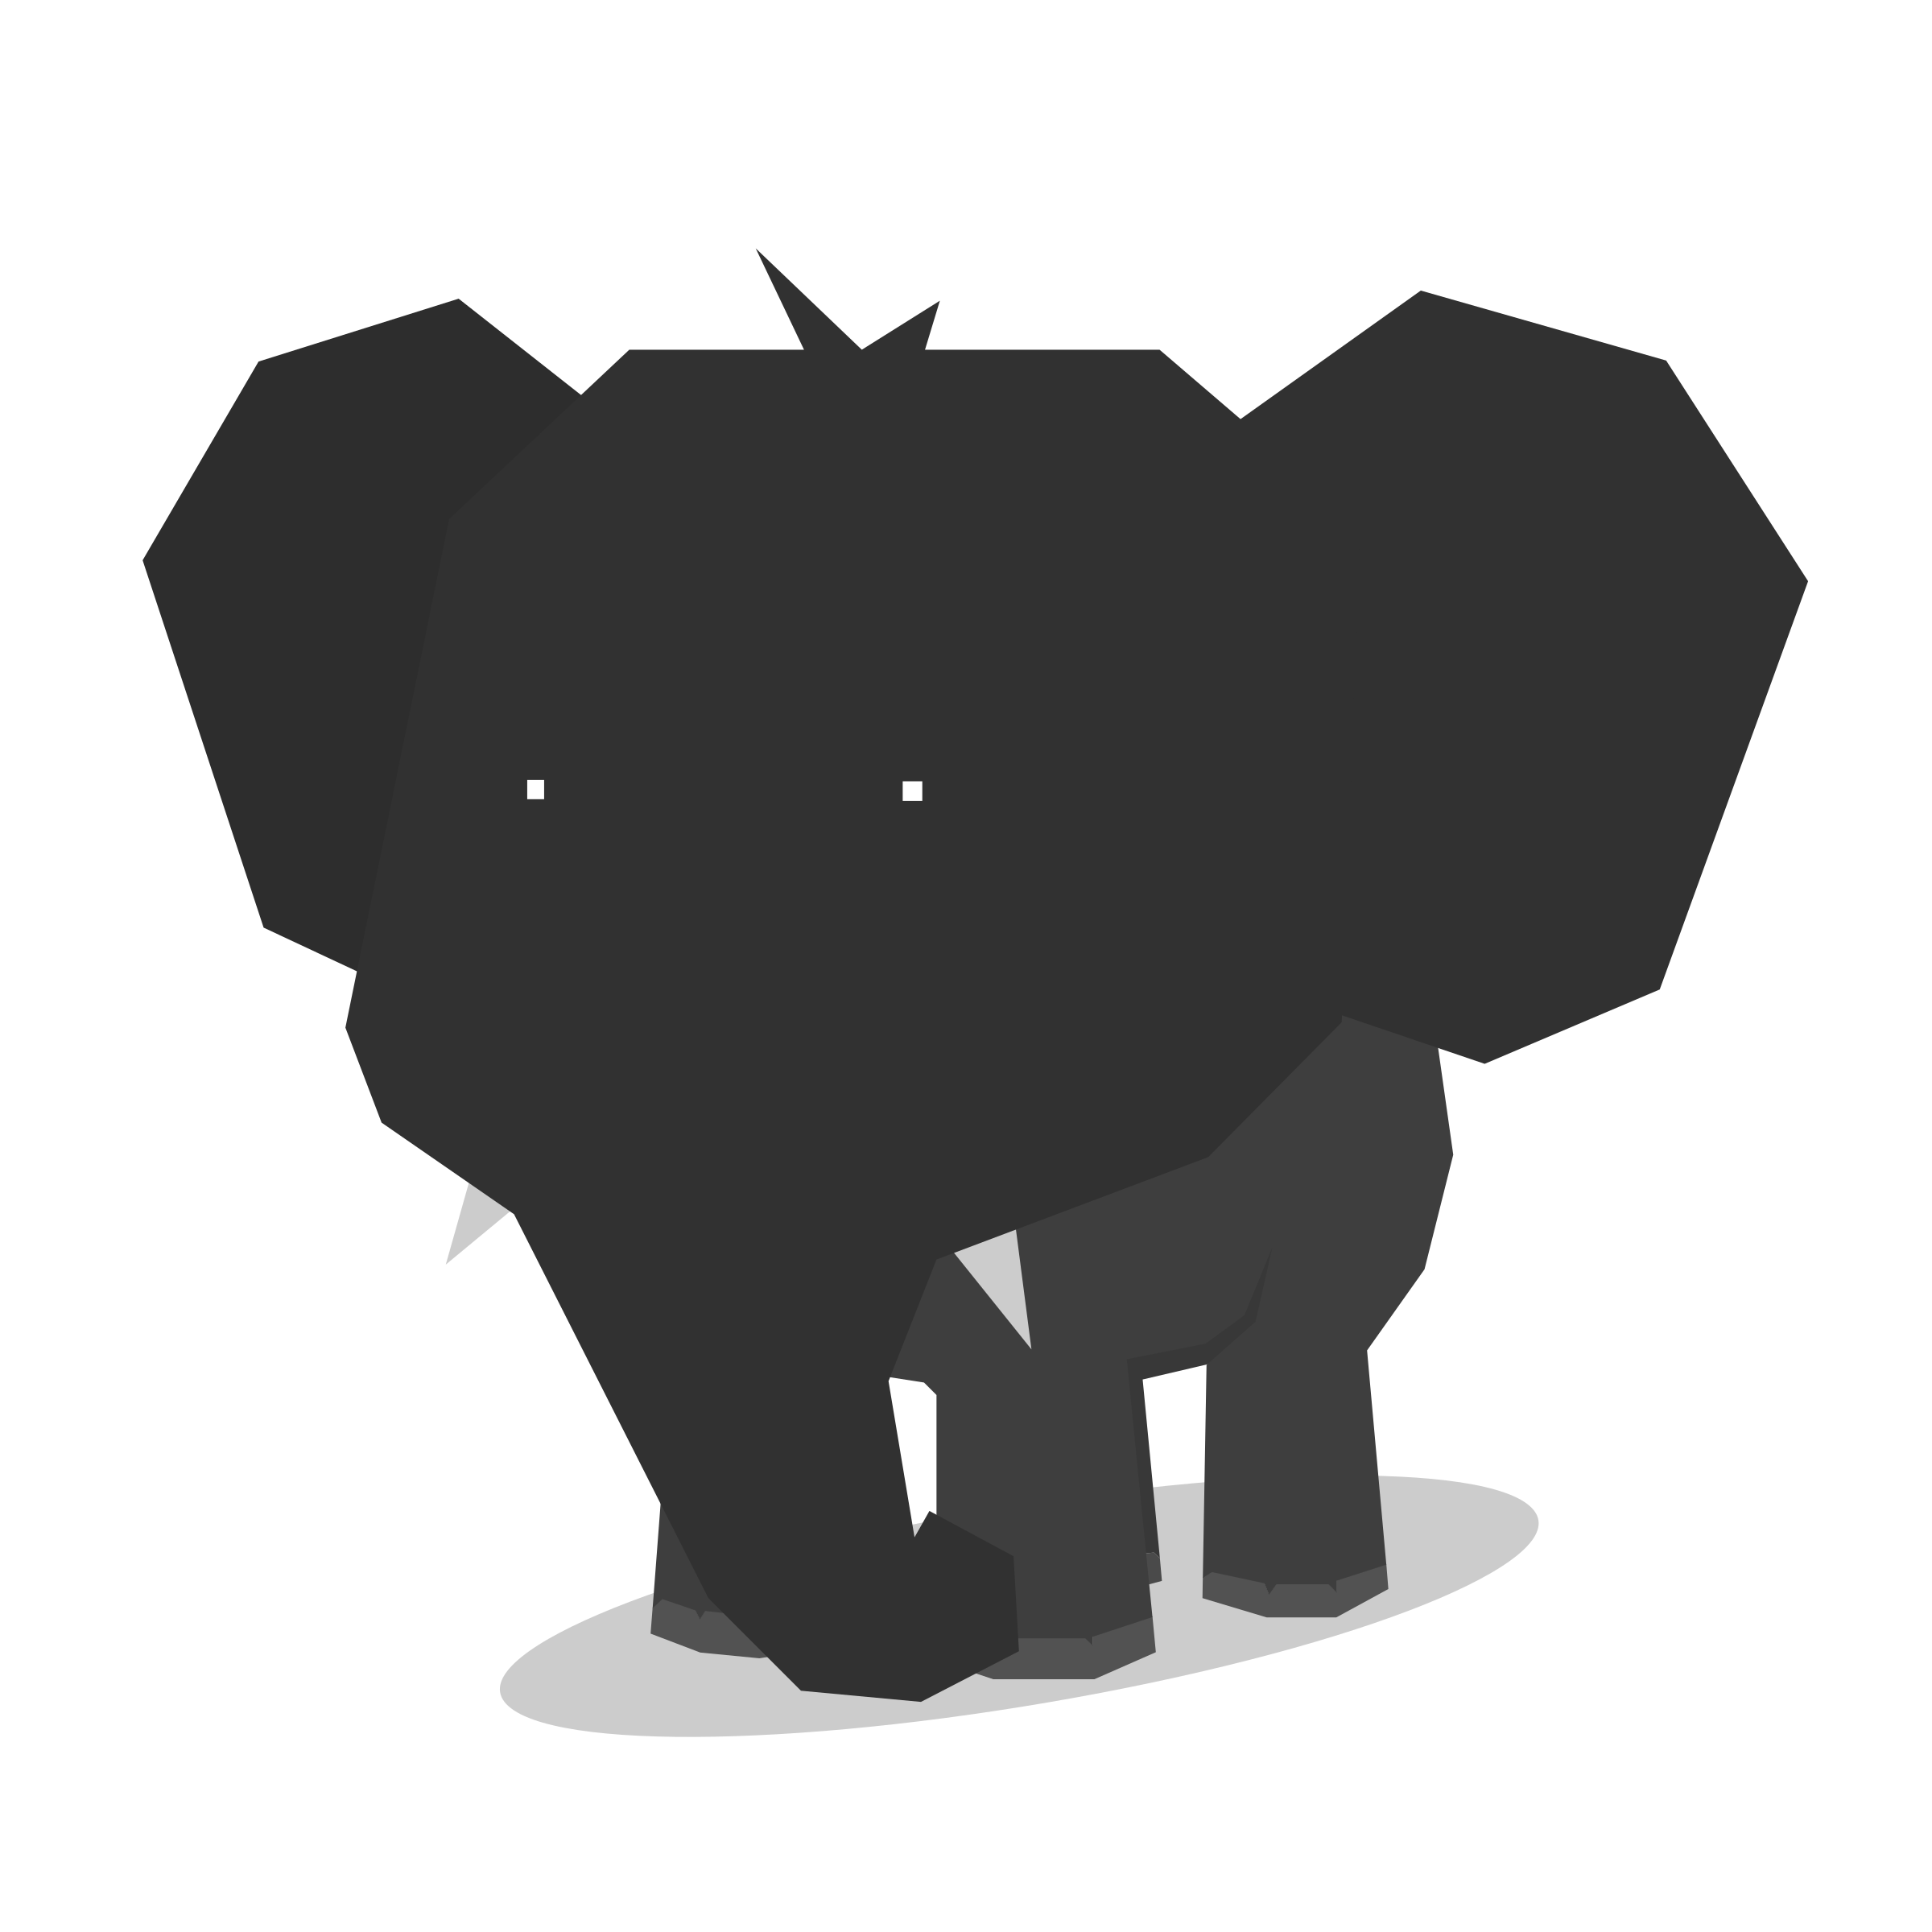 clipart library Elephant Minimal flat design Animal Icons PNG